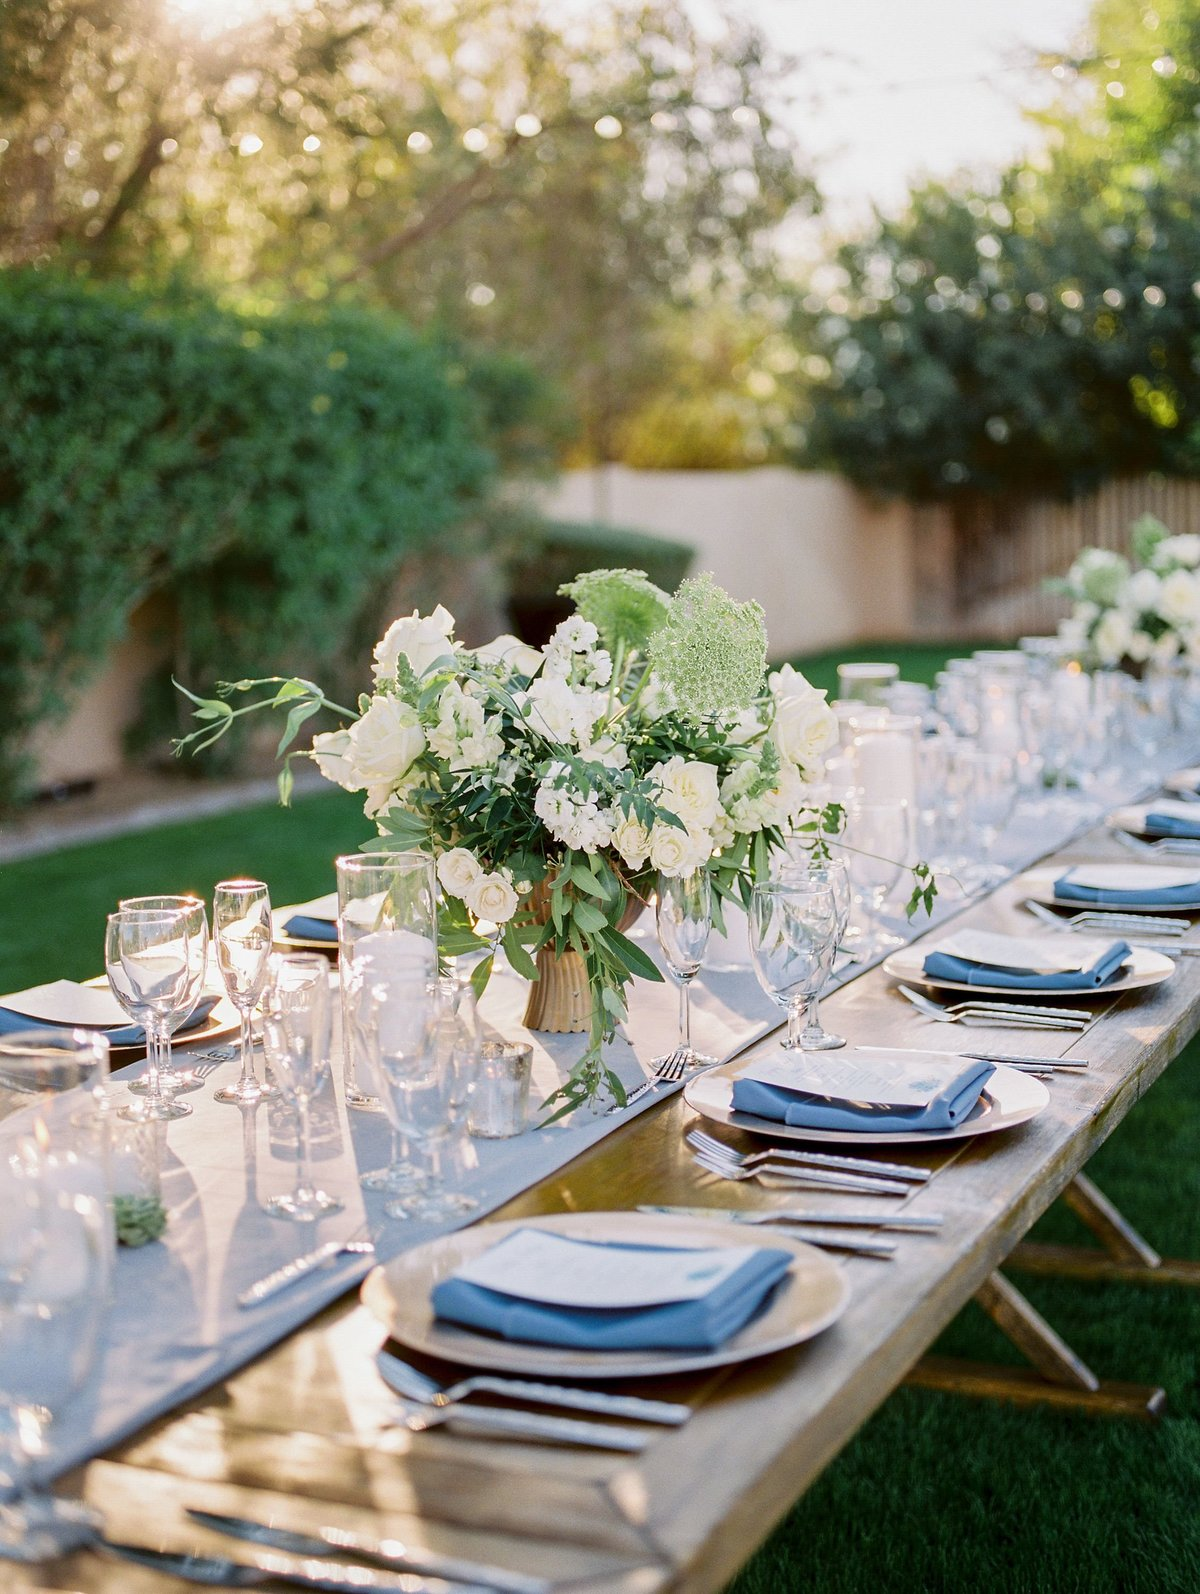 Imoni-Events-Charity-Maurer-Scottsdale-Private-Residence_0057